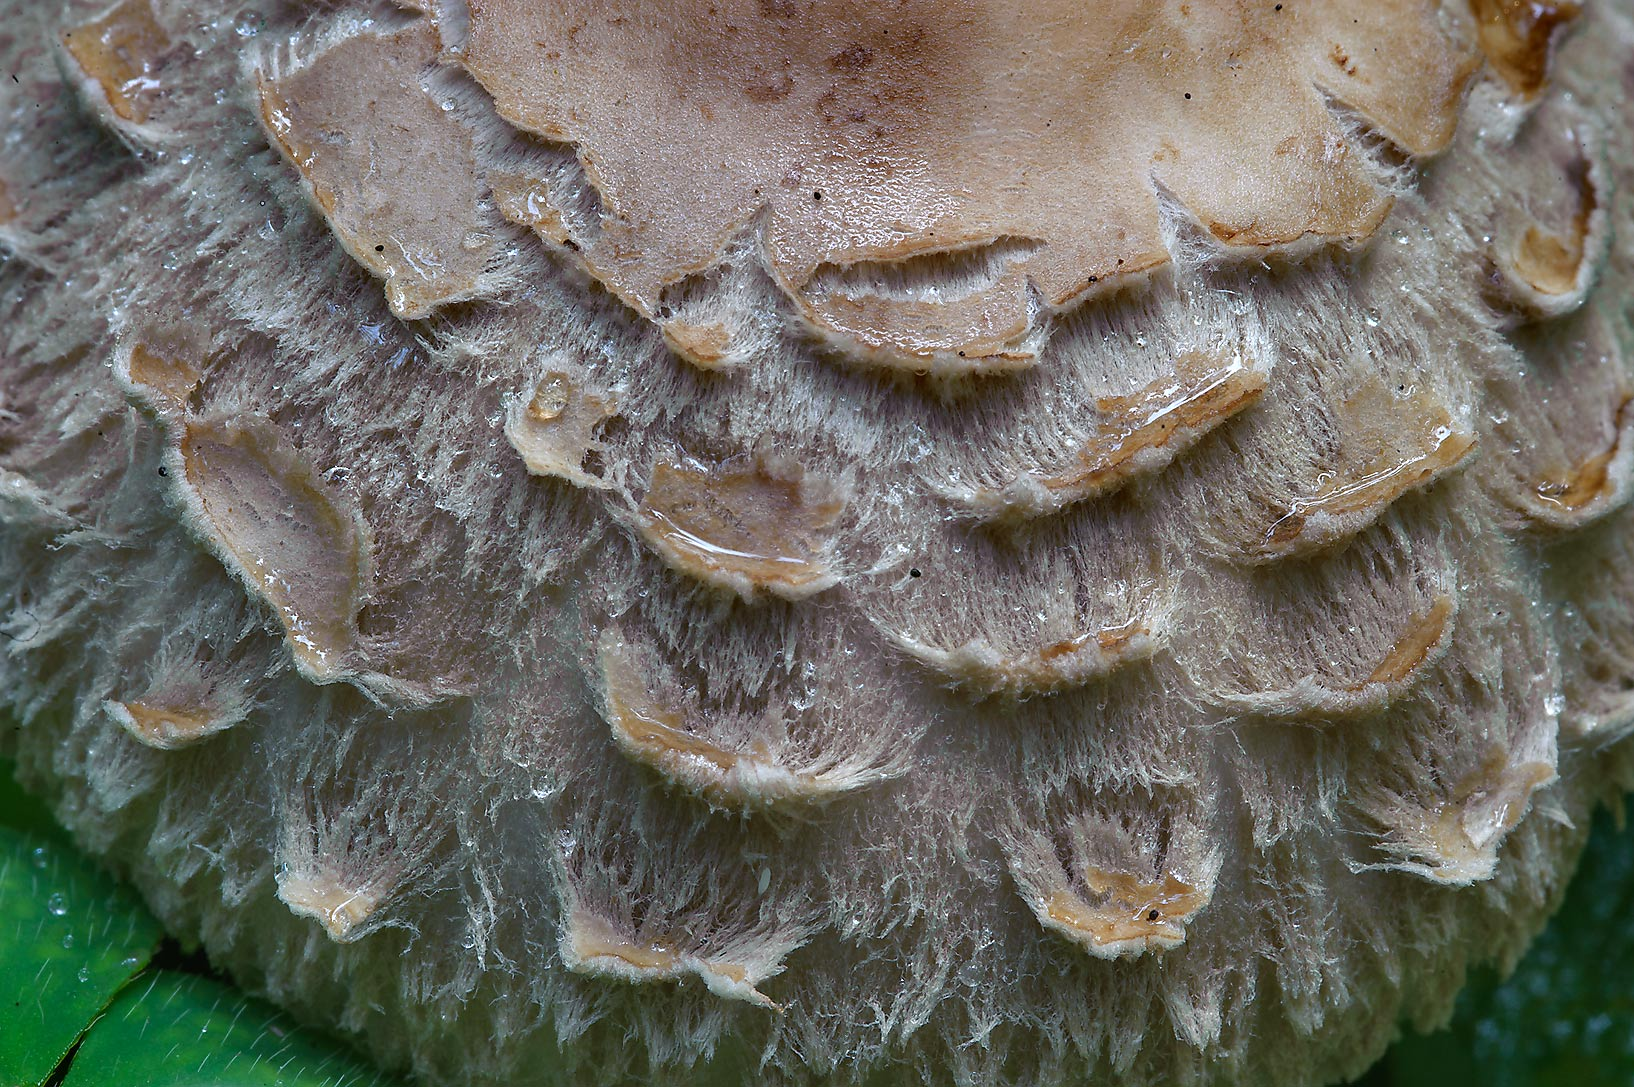 Scales on a cap of Shaggy parasol mushroom...miles north from St.Petersburg. Russia